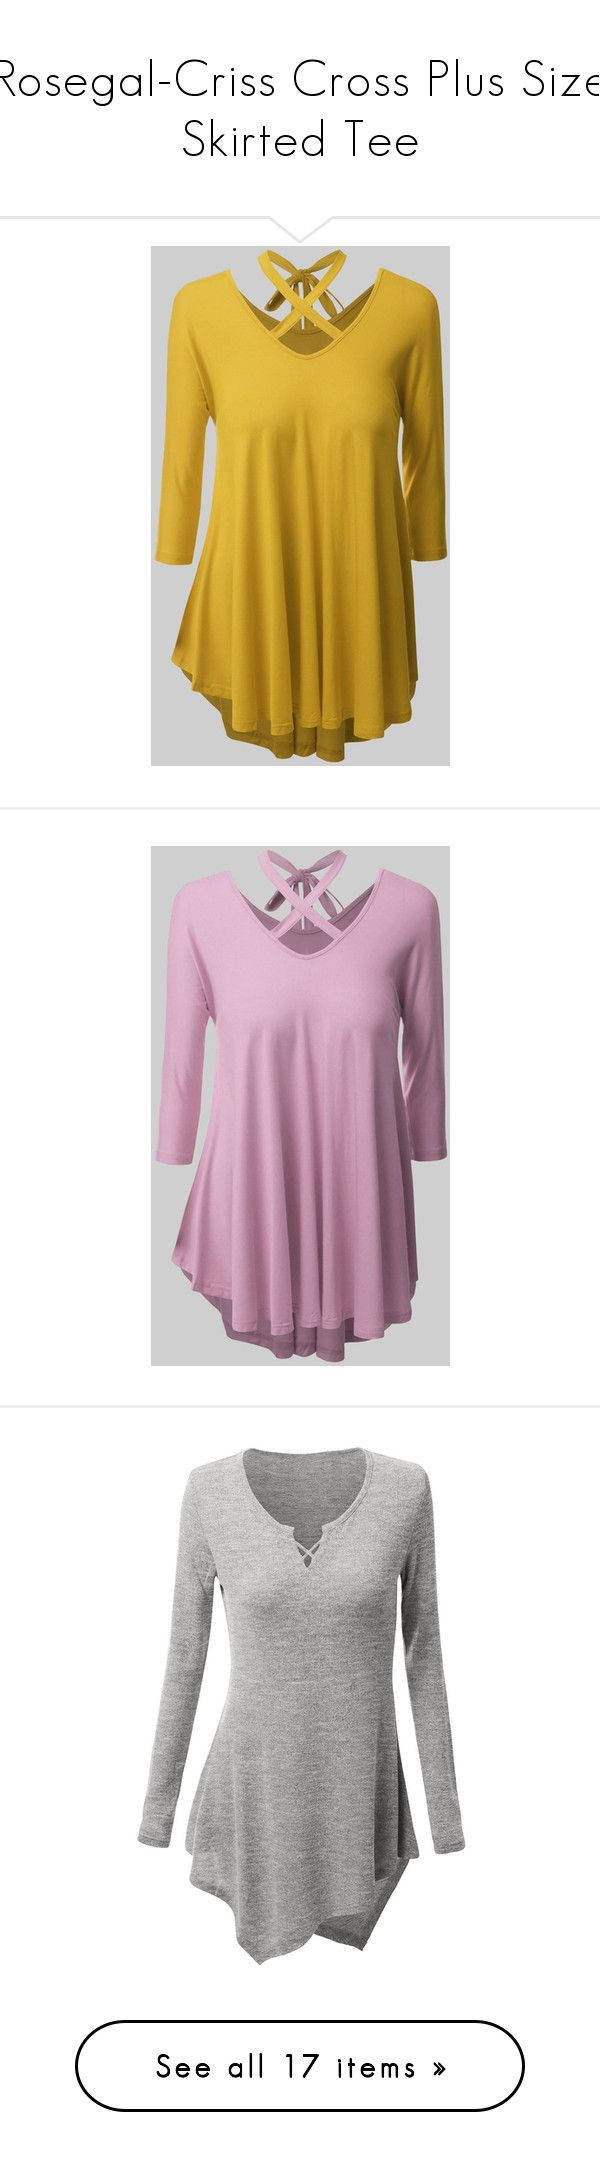 """""""Rosegal-Criss Cross Plus Size Skirted Tee"""" by fshionme ❤ liked on Polyvore featuring tops and t-shirts"""